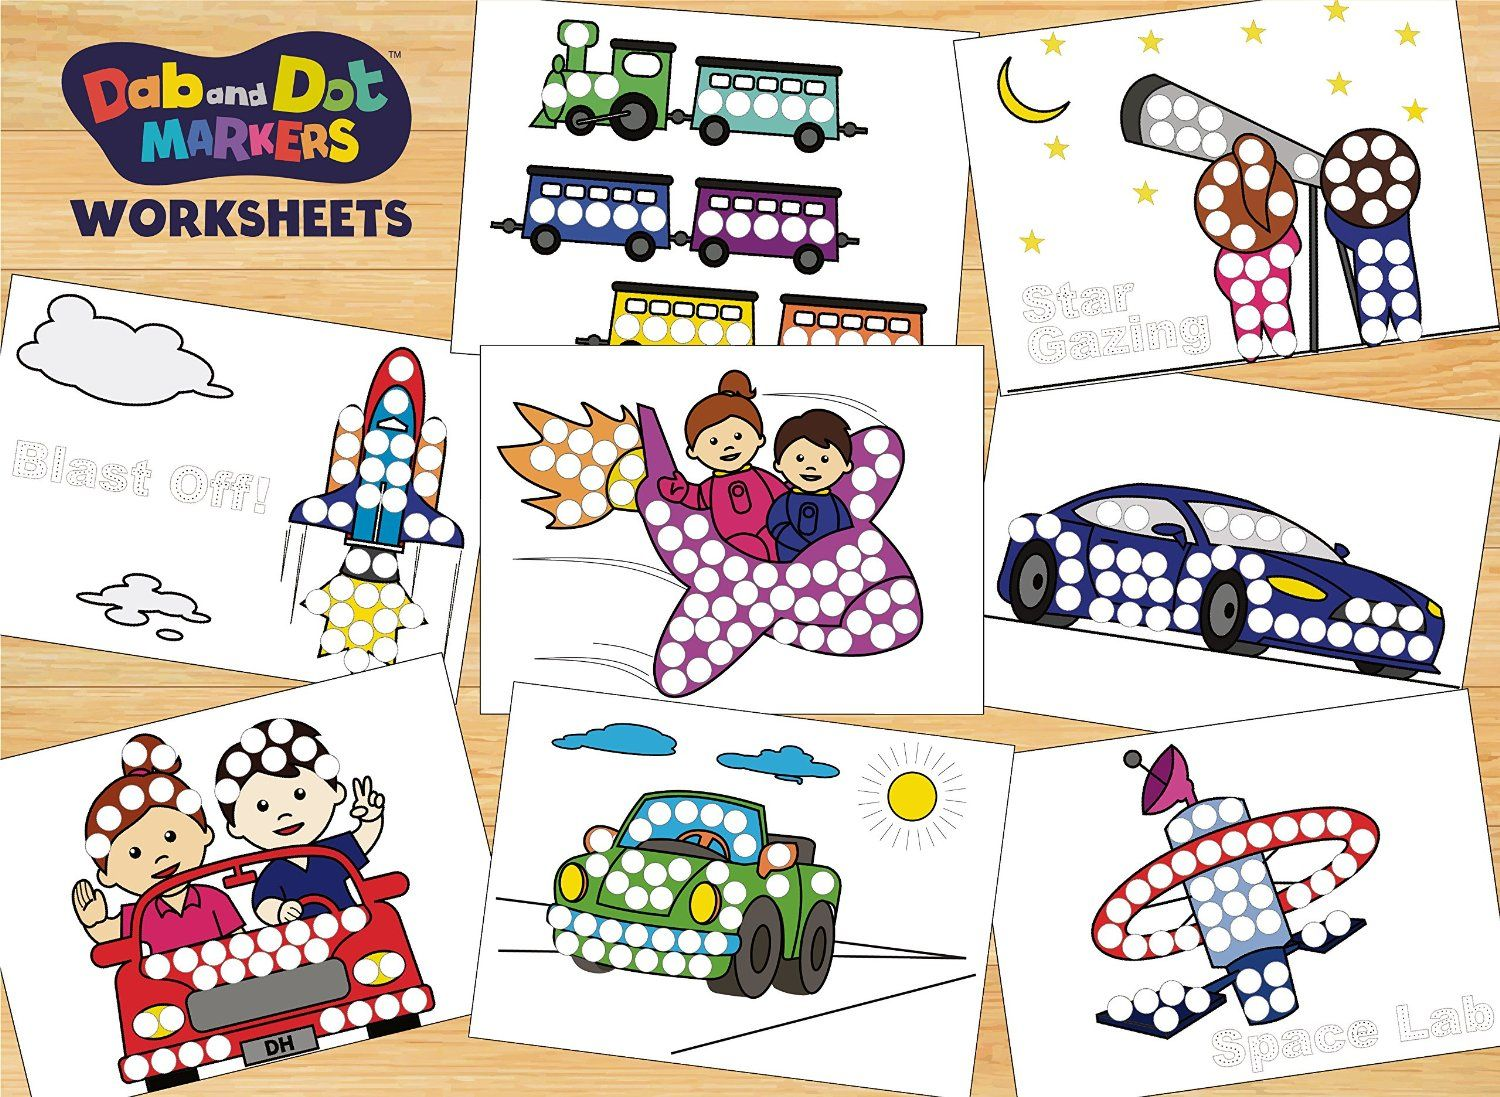 Pin By Doodle Hog On Dab And Dot Markers